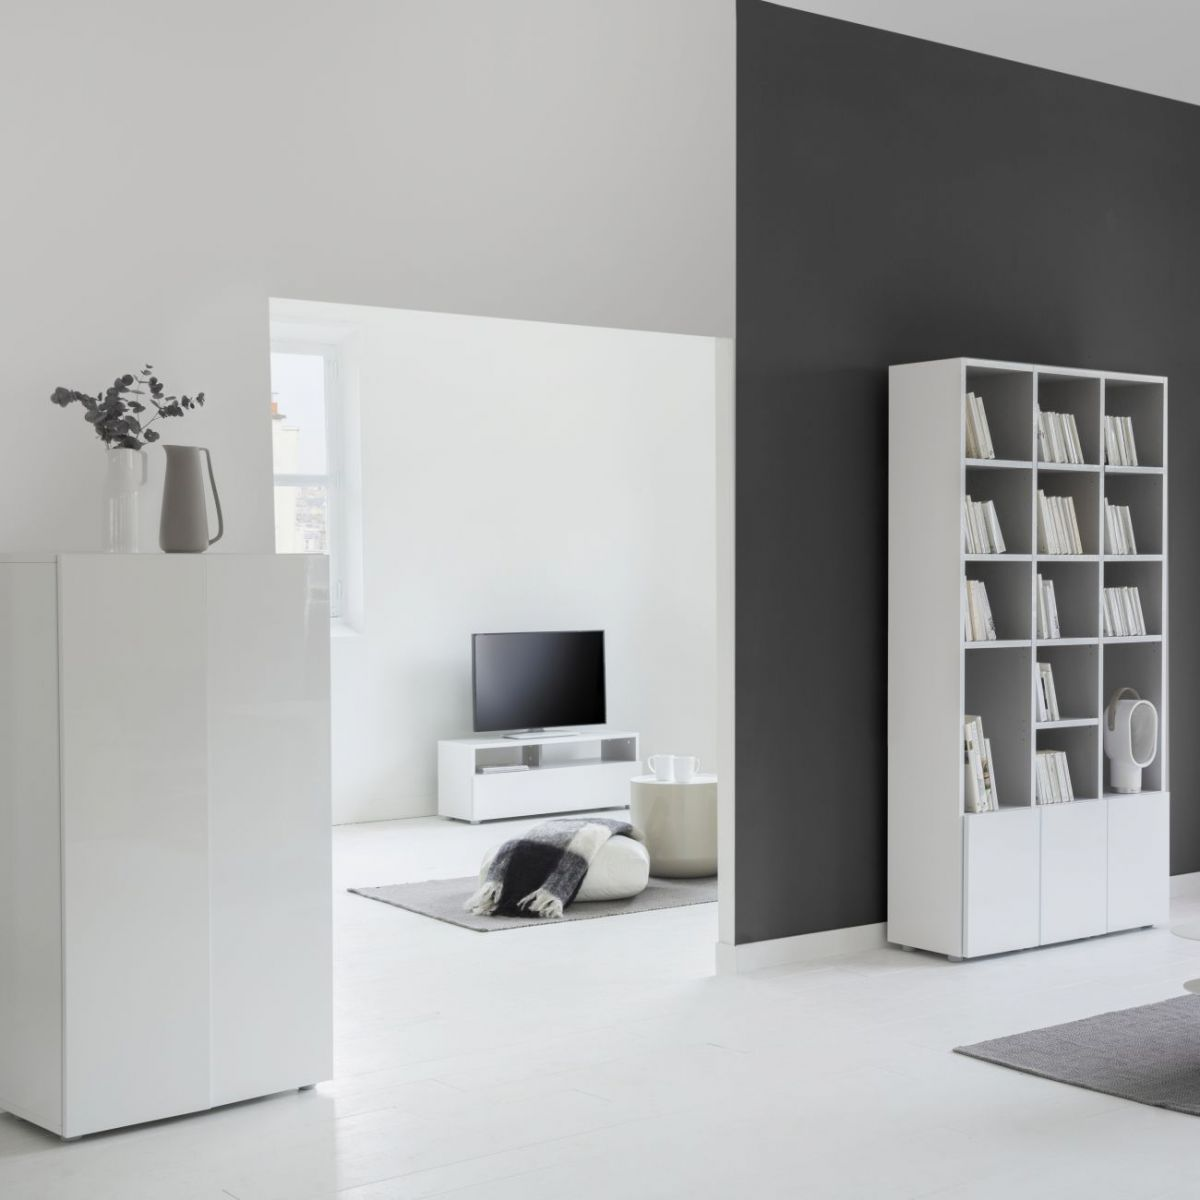 kubrik buffet haut blanc laqu habitat soldes buffet habitat ventes pas. Black Bedroom Furniture Sets. Home Design Ideas